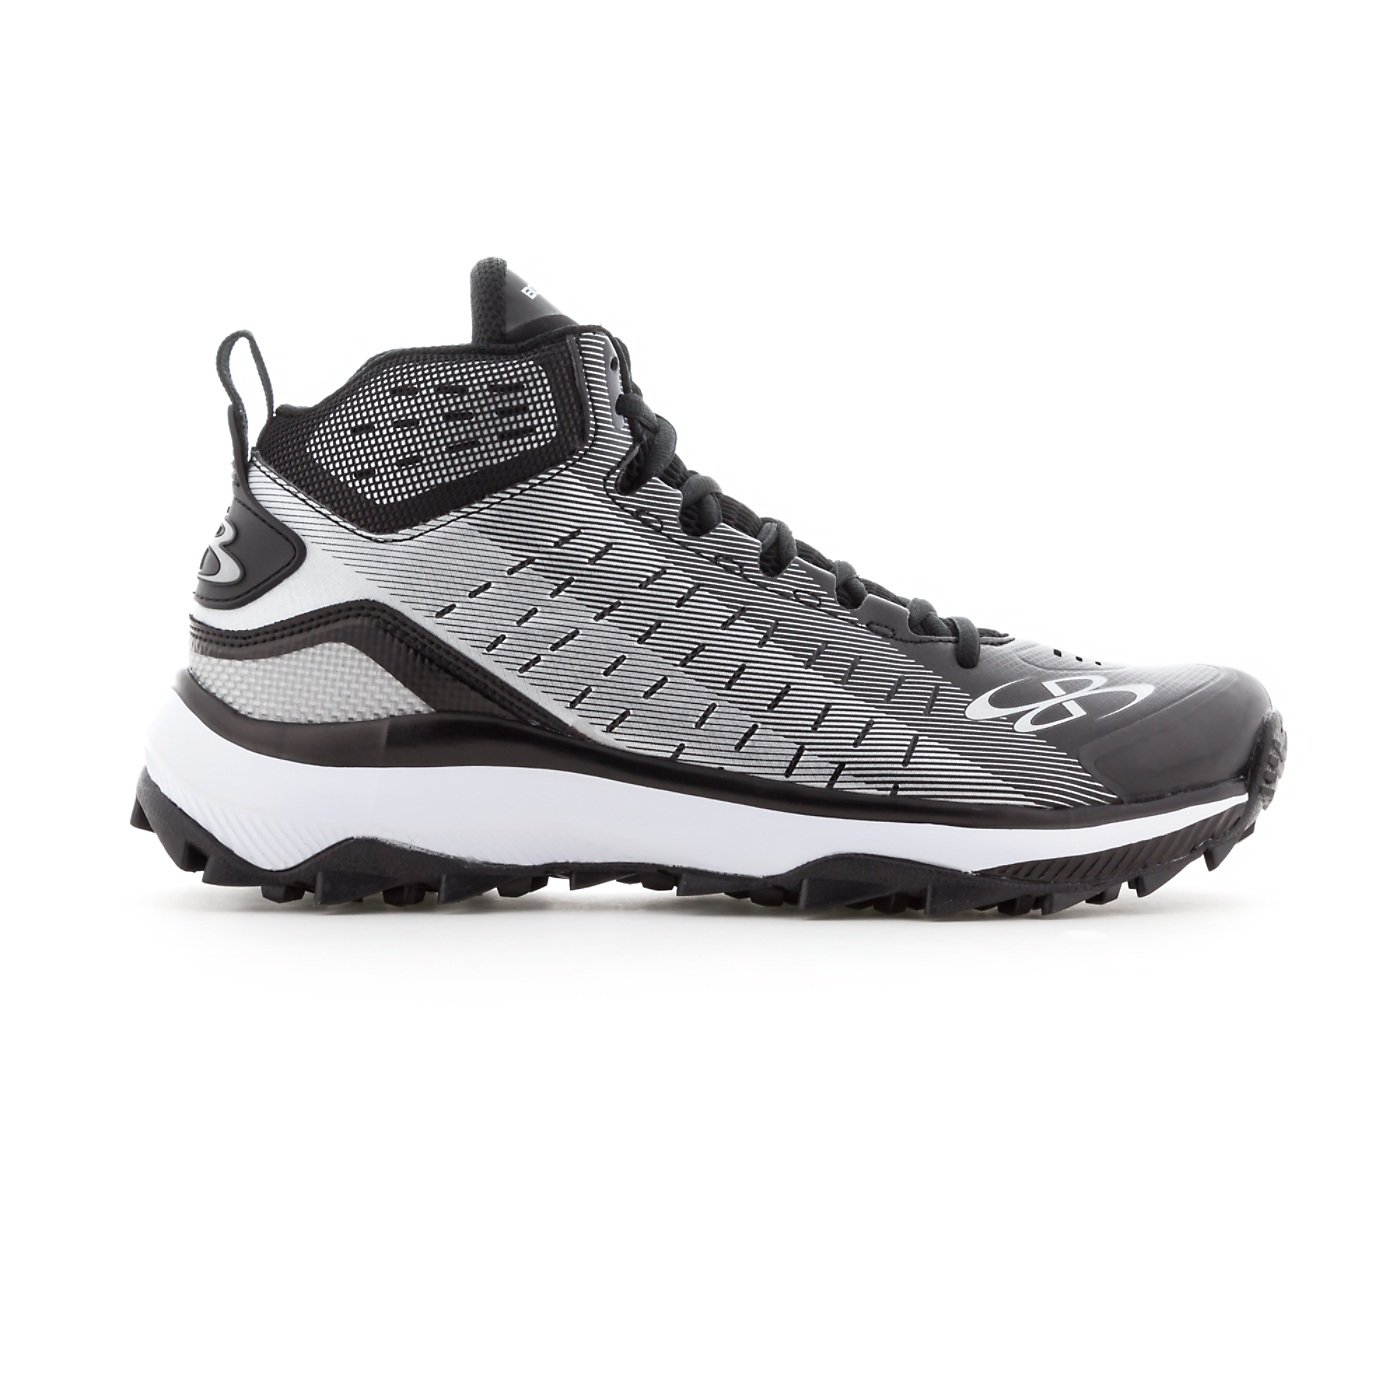 Boombah Men's Catalyst Mid Turf Shoes - 10 Color Options - Multiple Sizes B07B5R3SSP 8.5|Black/Gray